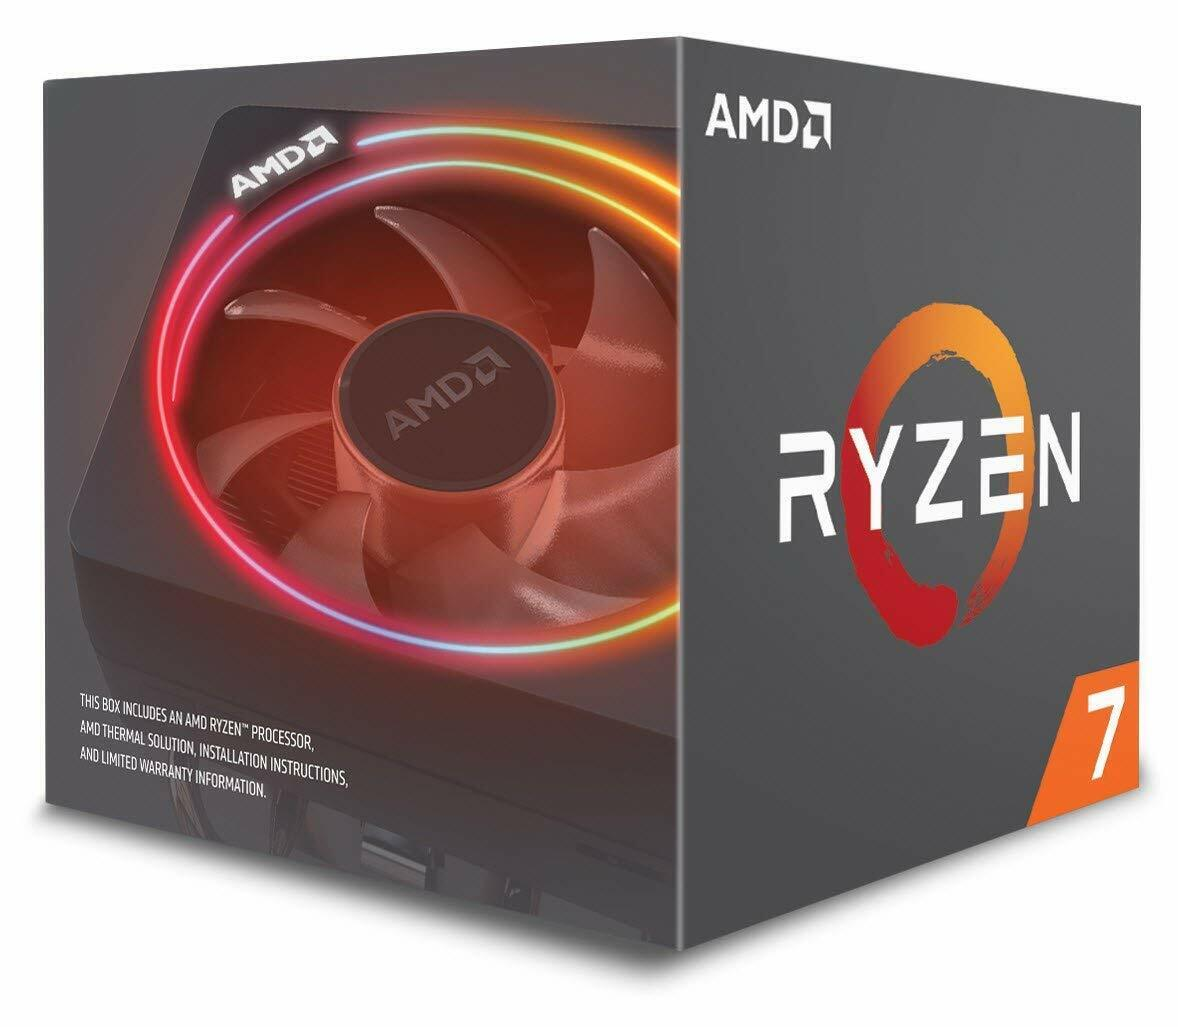 AMD Ryzen 7 2700X Processor with Wraith Prism LED Cooler - Y